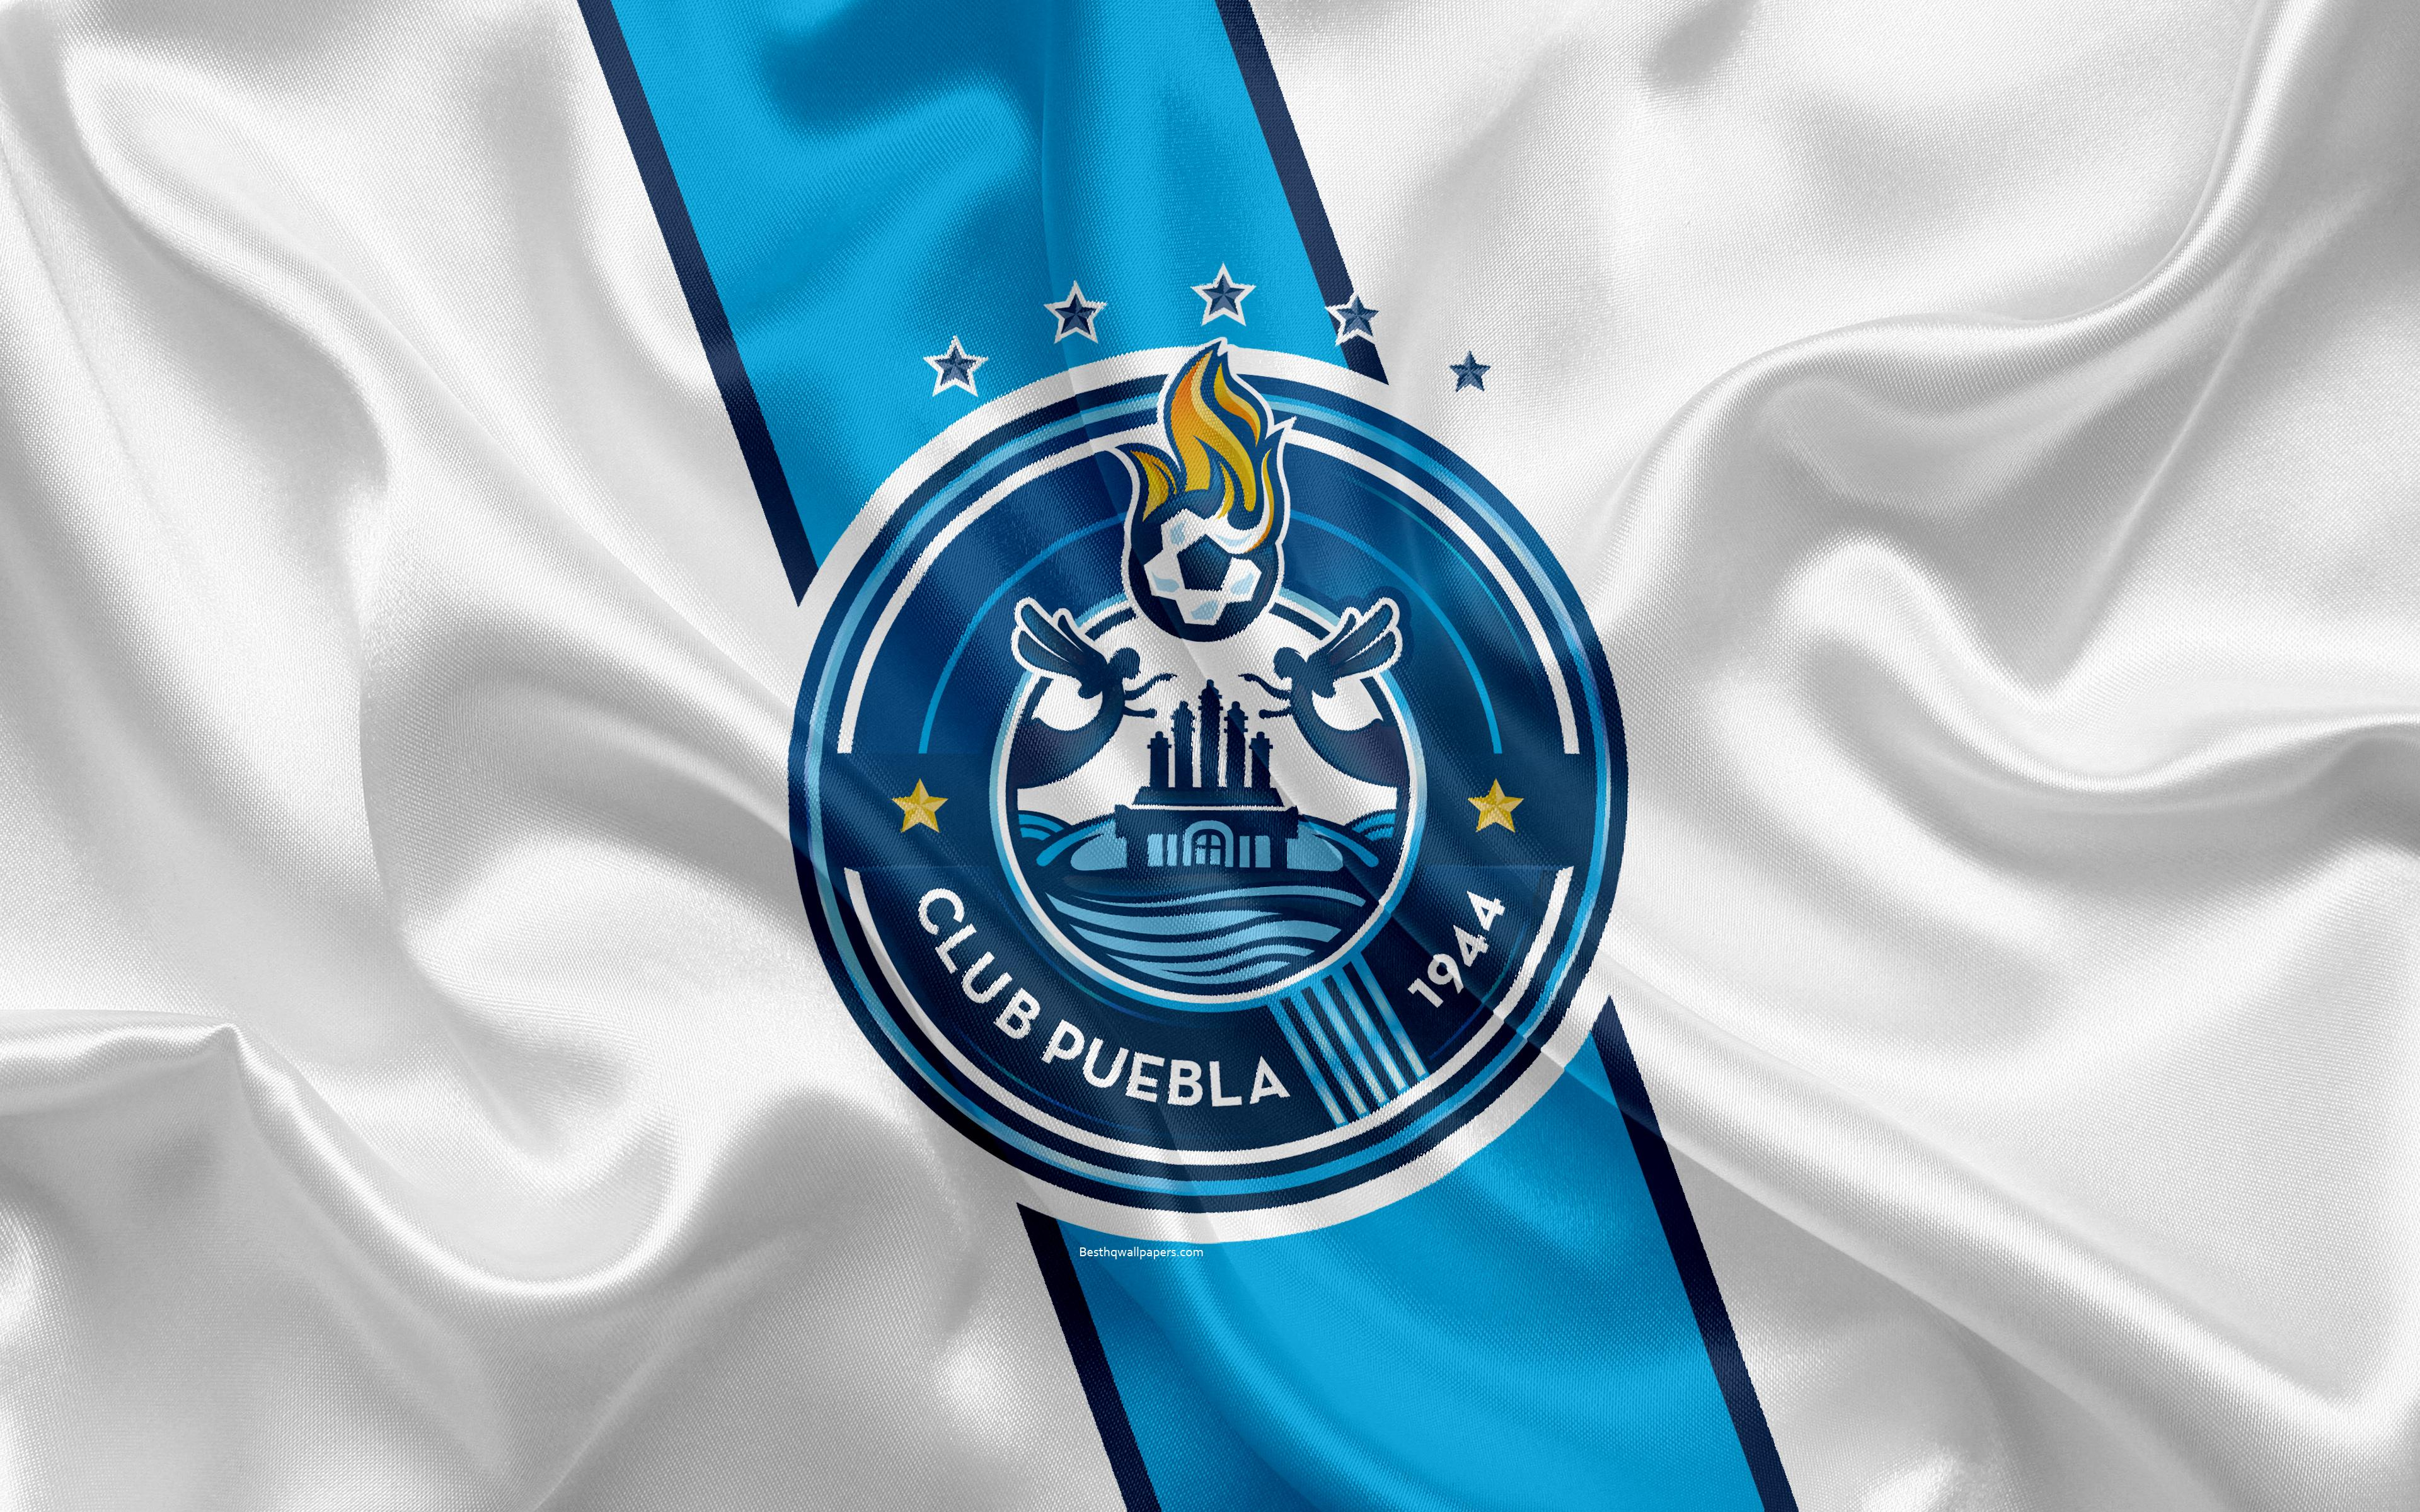 Download wallpapers Puebla FC, 4K, Mexican Football Club, emblem ...